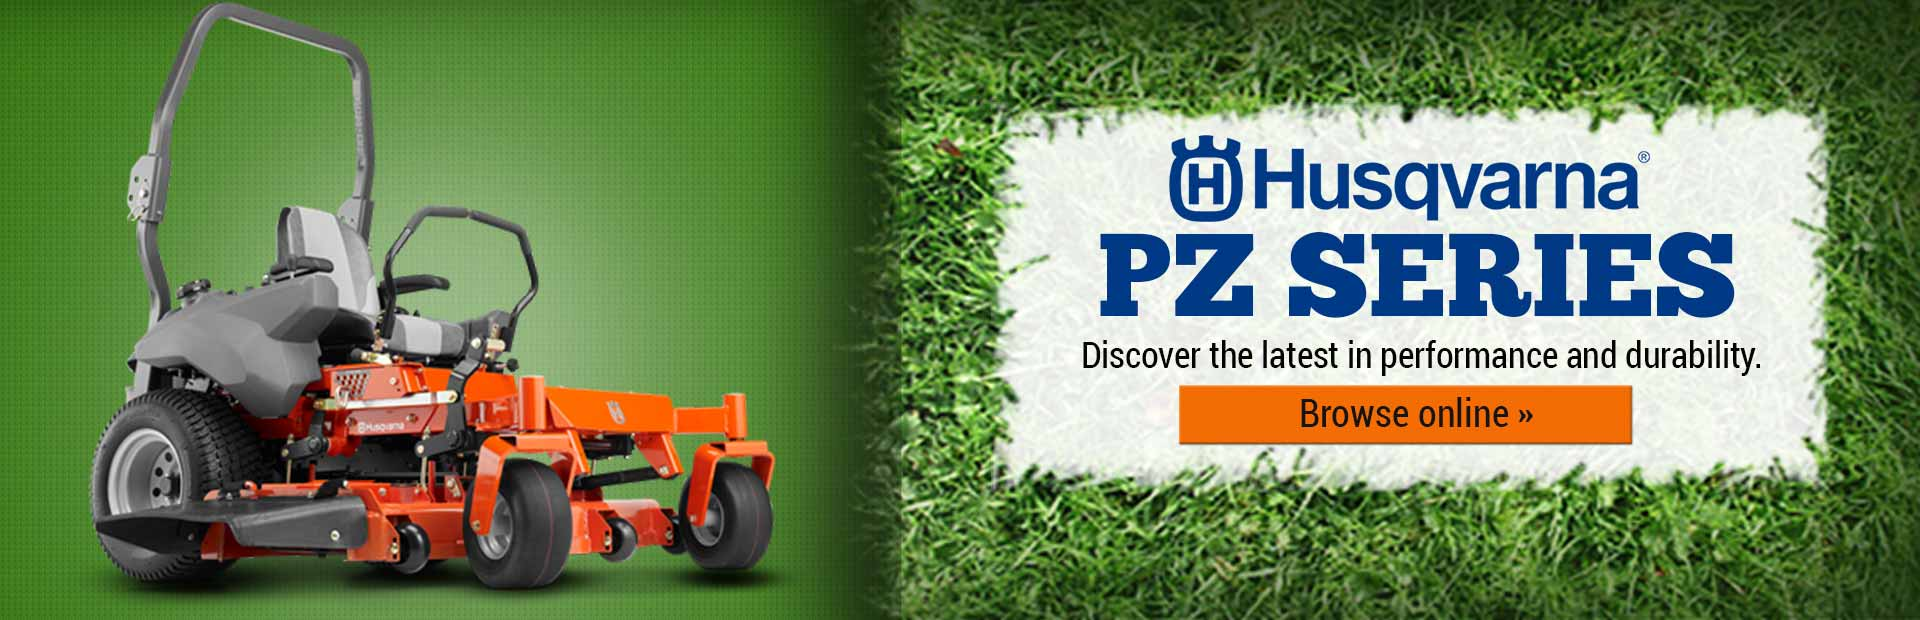 Husqvarna PZ Series Lawn Mowers: Click here to discover the latest in performance and durability.